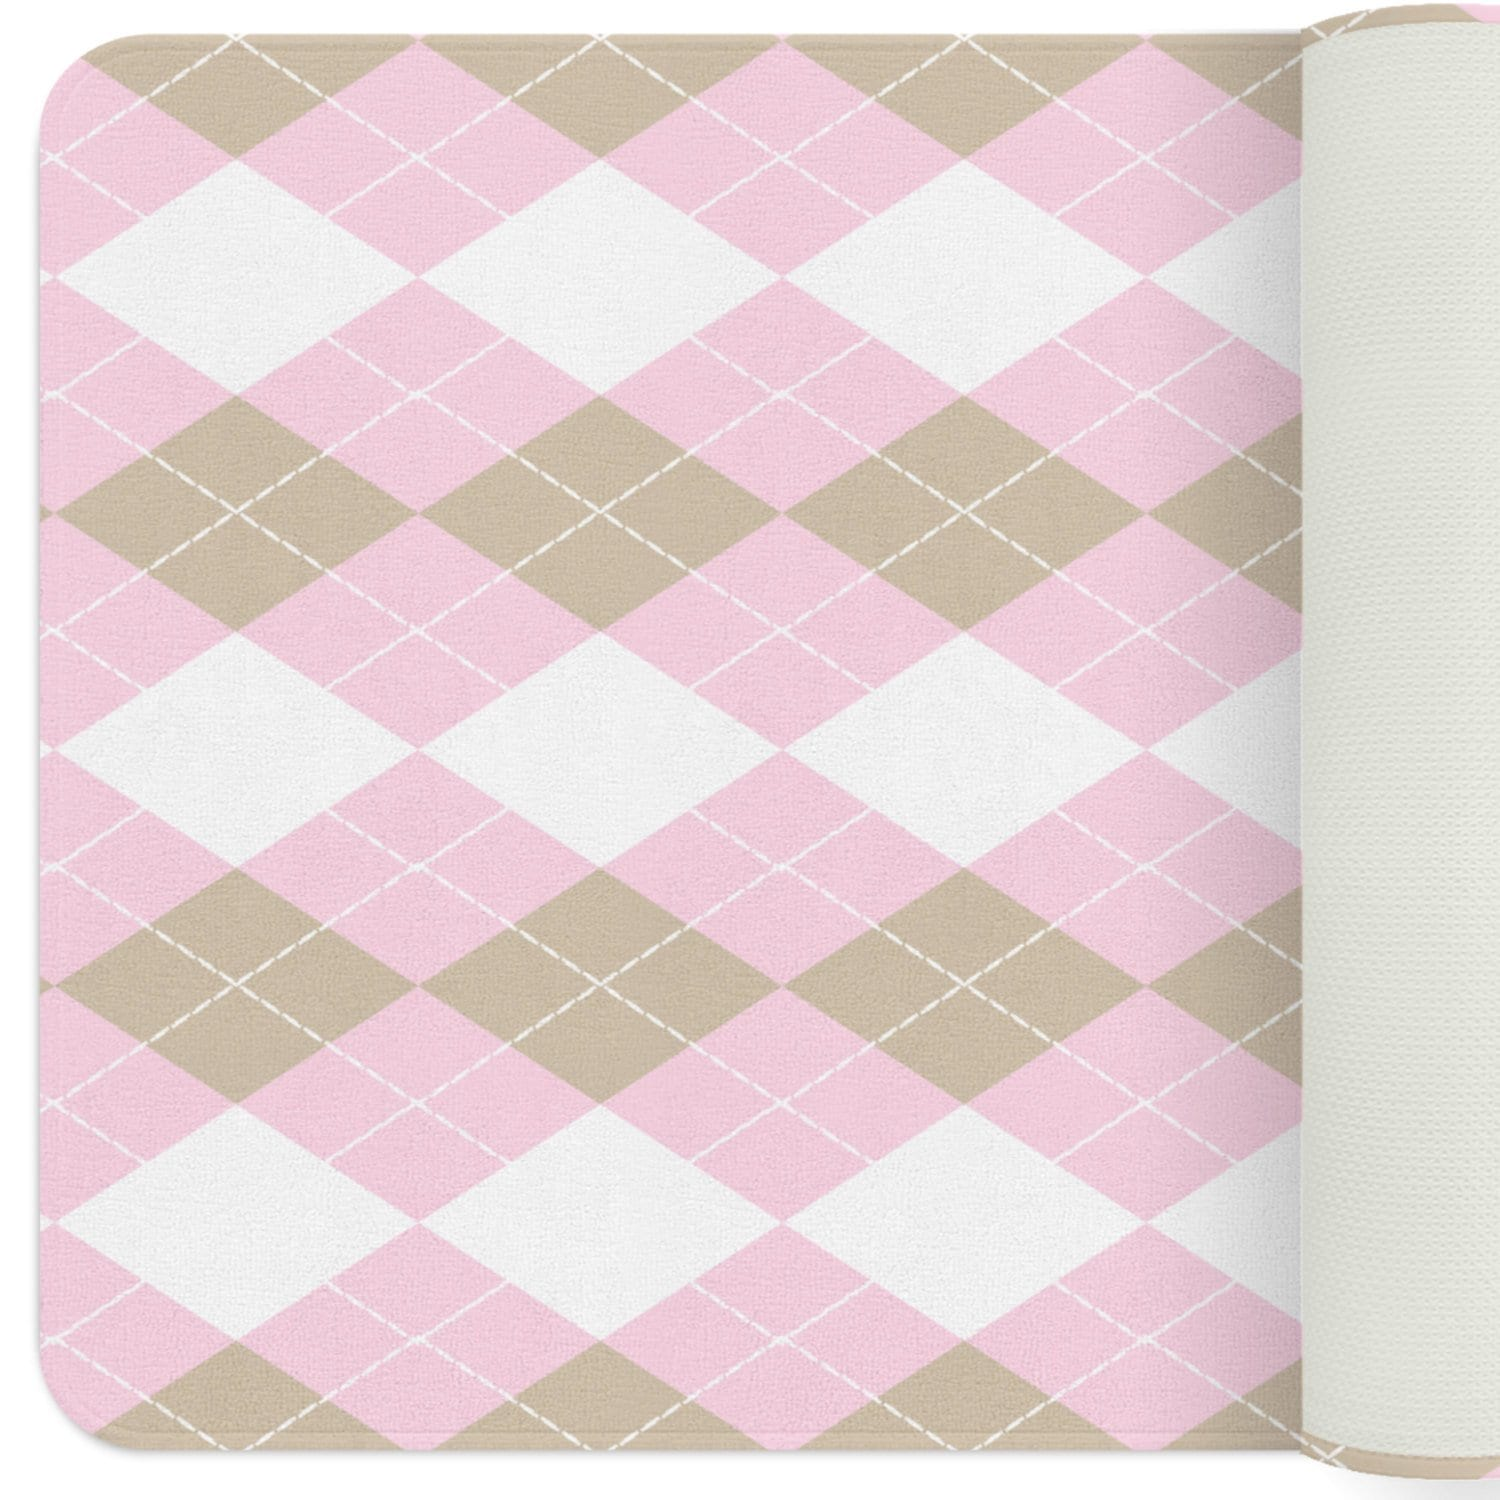 A rectangular rug with argyle pattern. This geometric pattern consists of diamond shapes in pink, white and beige. This argyle patterned rug will go with any nursery theme and will give your baby girl's nursery a sophisticated look.